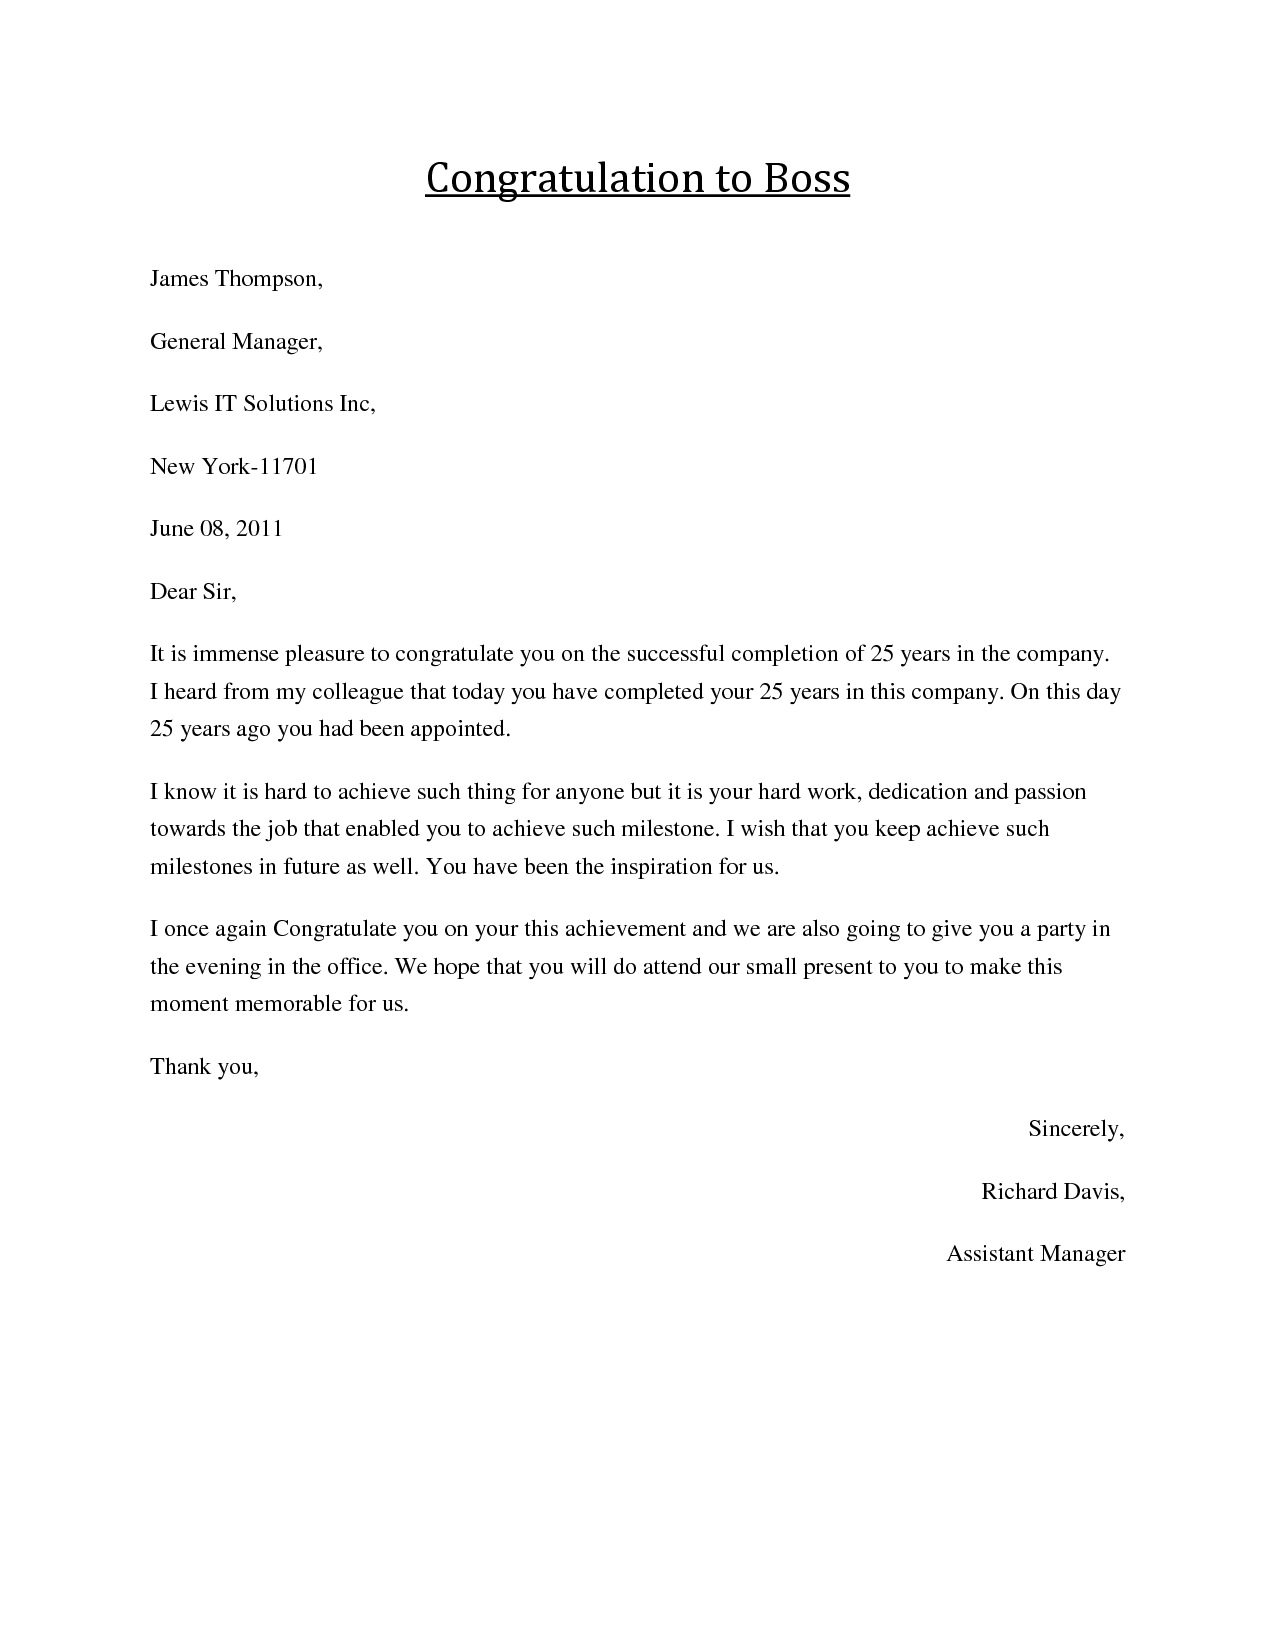 Congratulations Letter To Boss